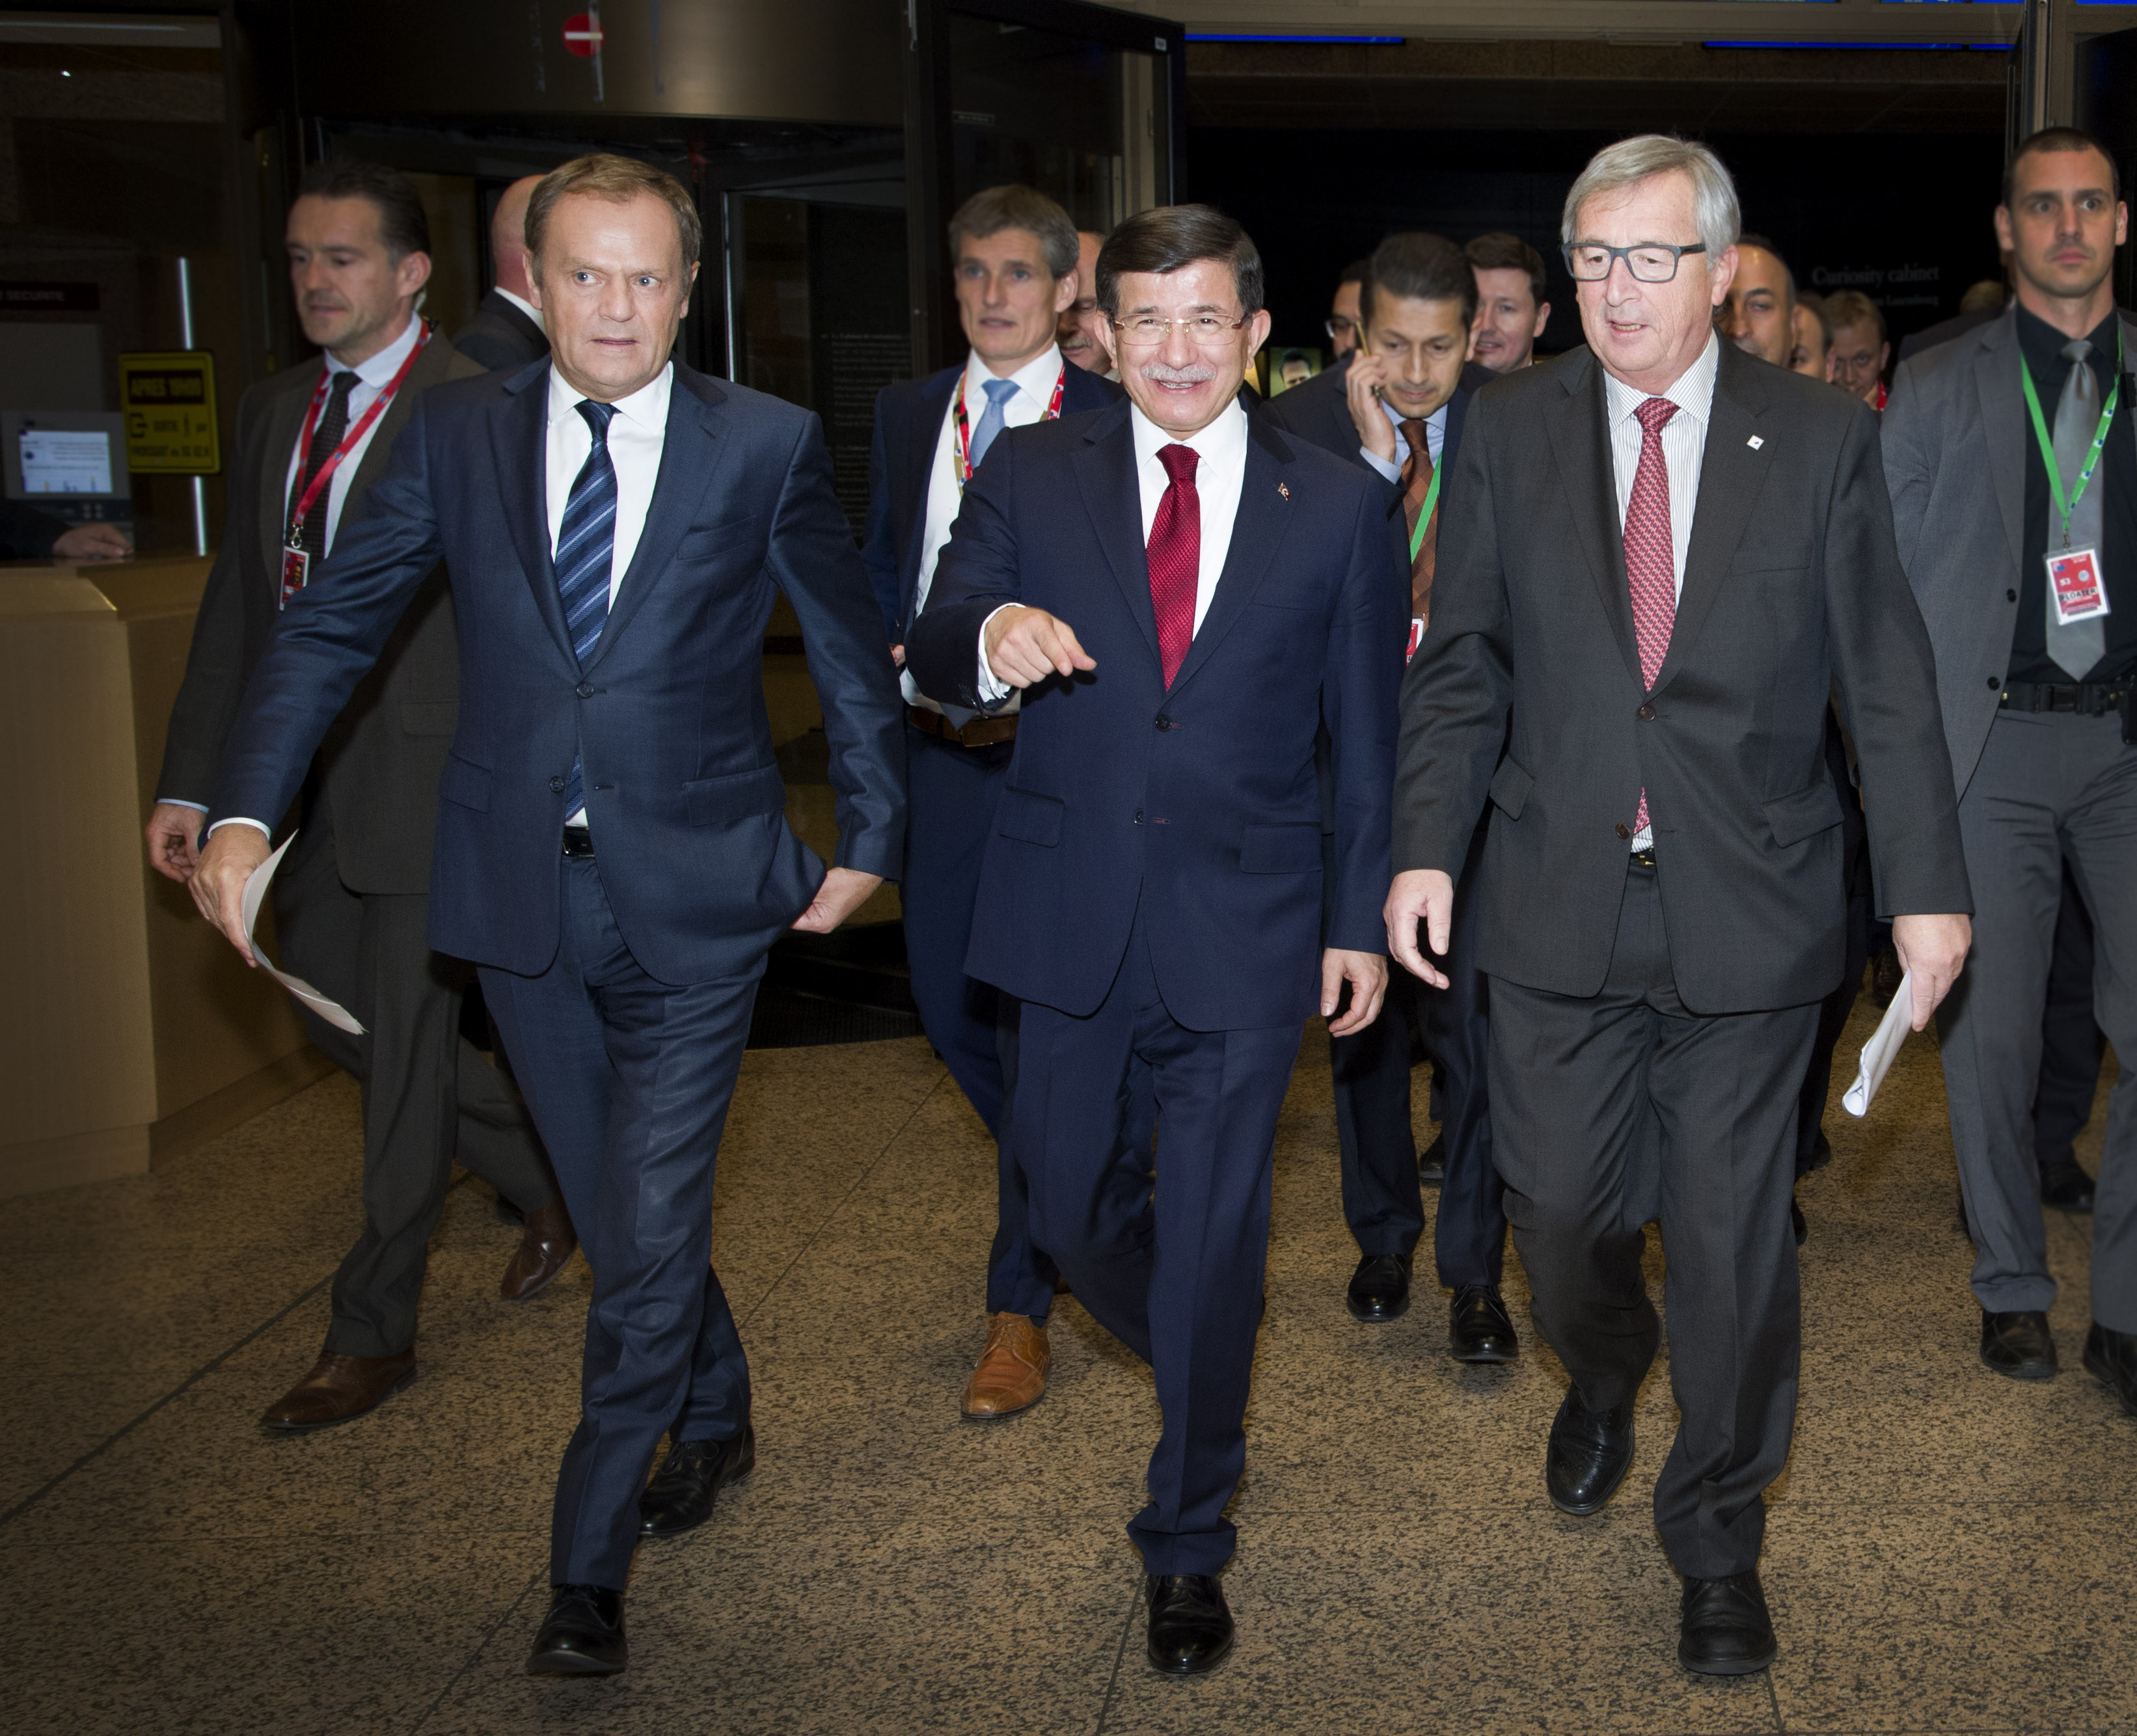 Turkish PM Davotoglu (c.) flanked by EU Council President Tusk (l.) and Commission President Juncker (r.)